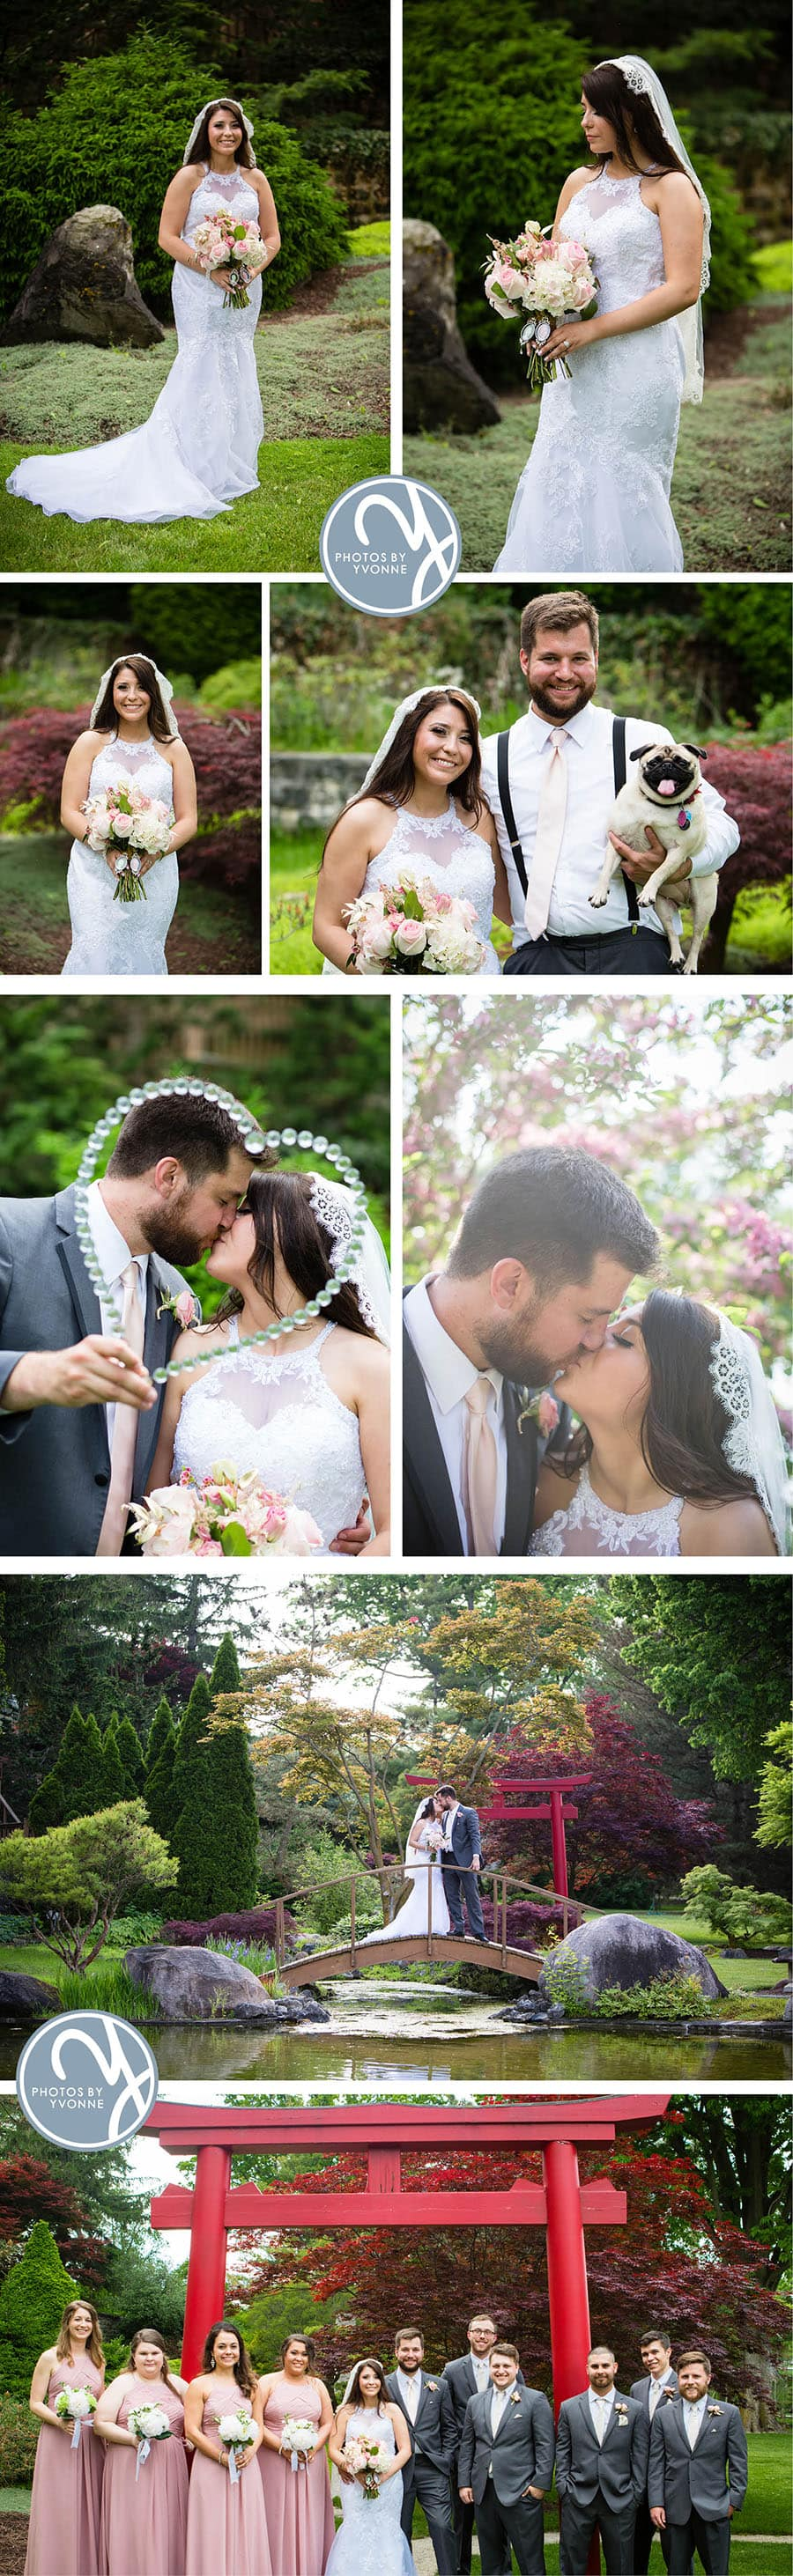 Jacon & Christine's May wedding was breathtaking